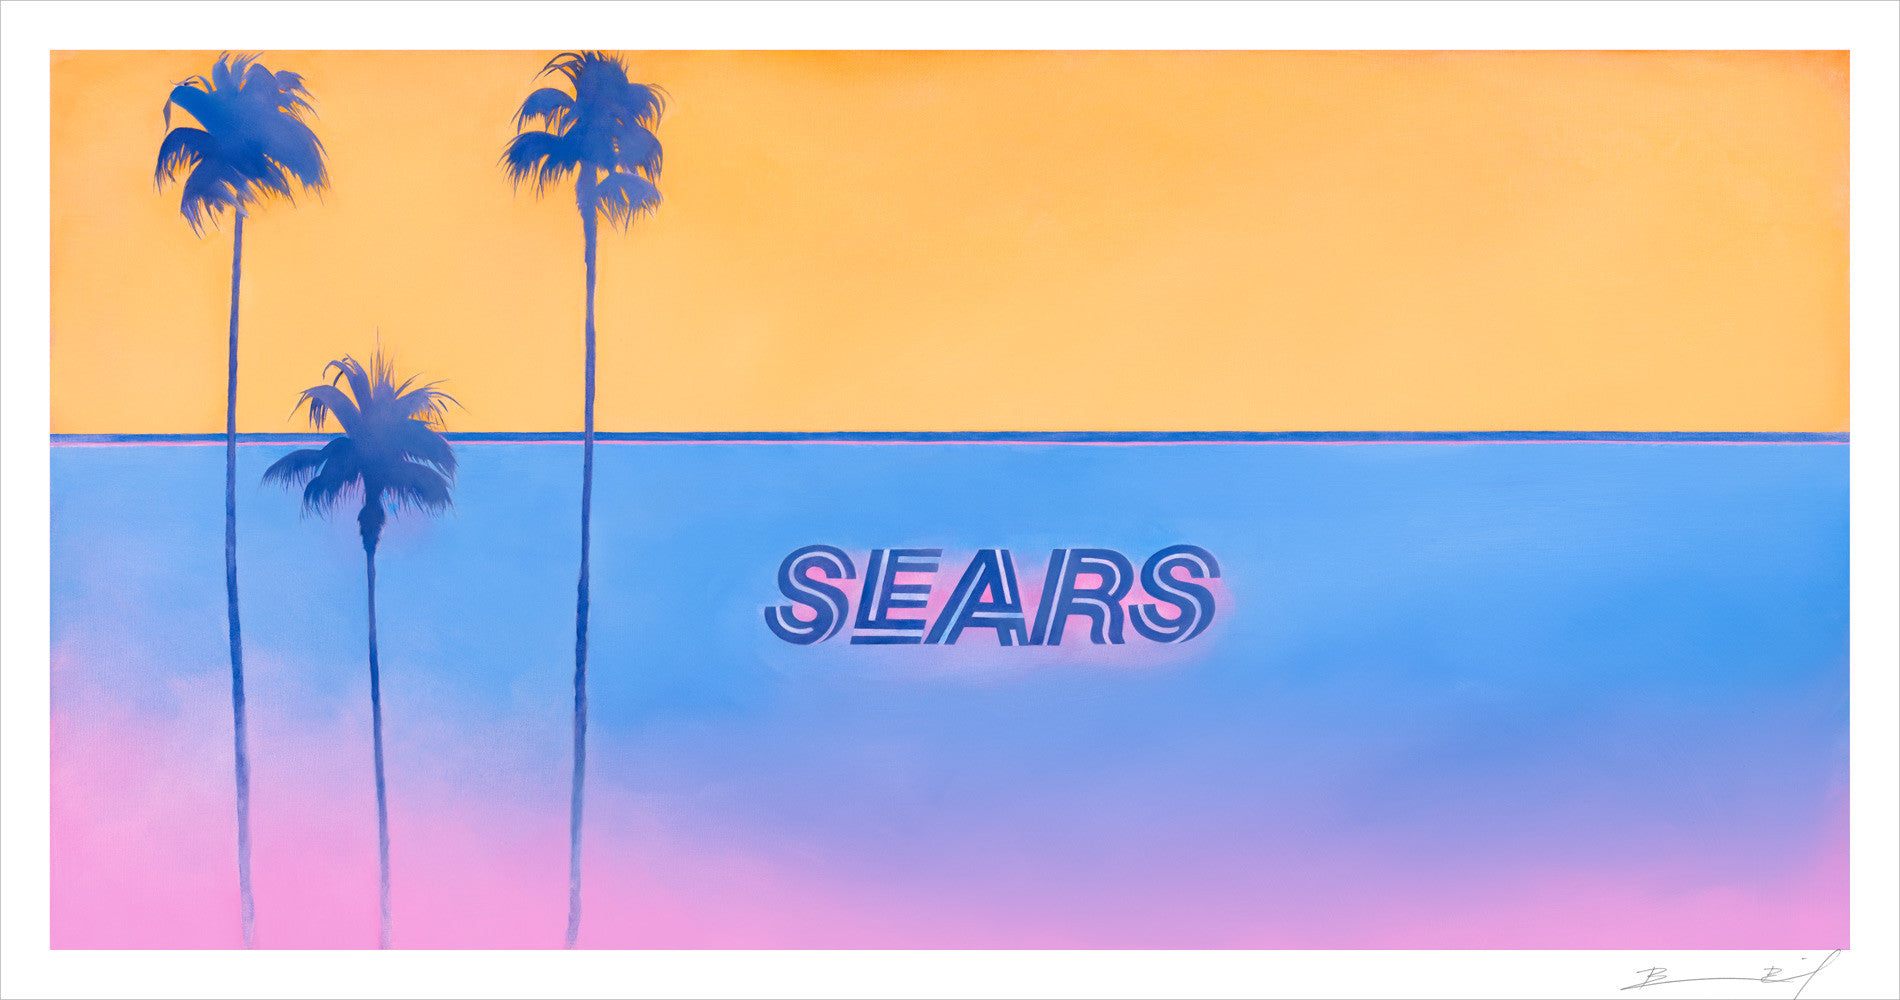 """Sears Vice City (Santa Barbara)"" signed print"